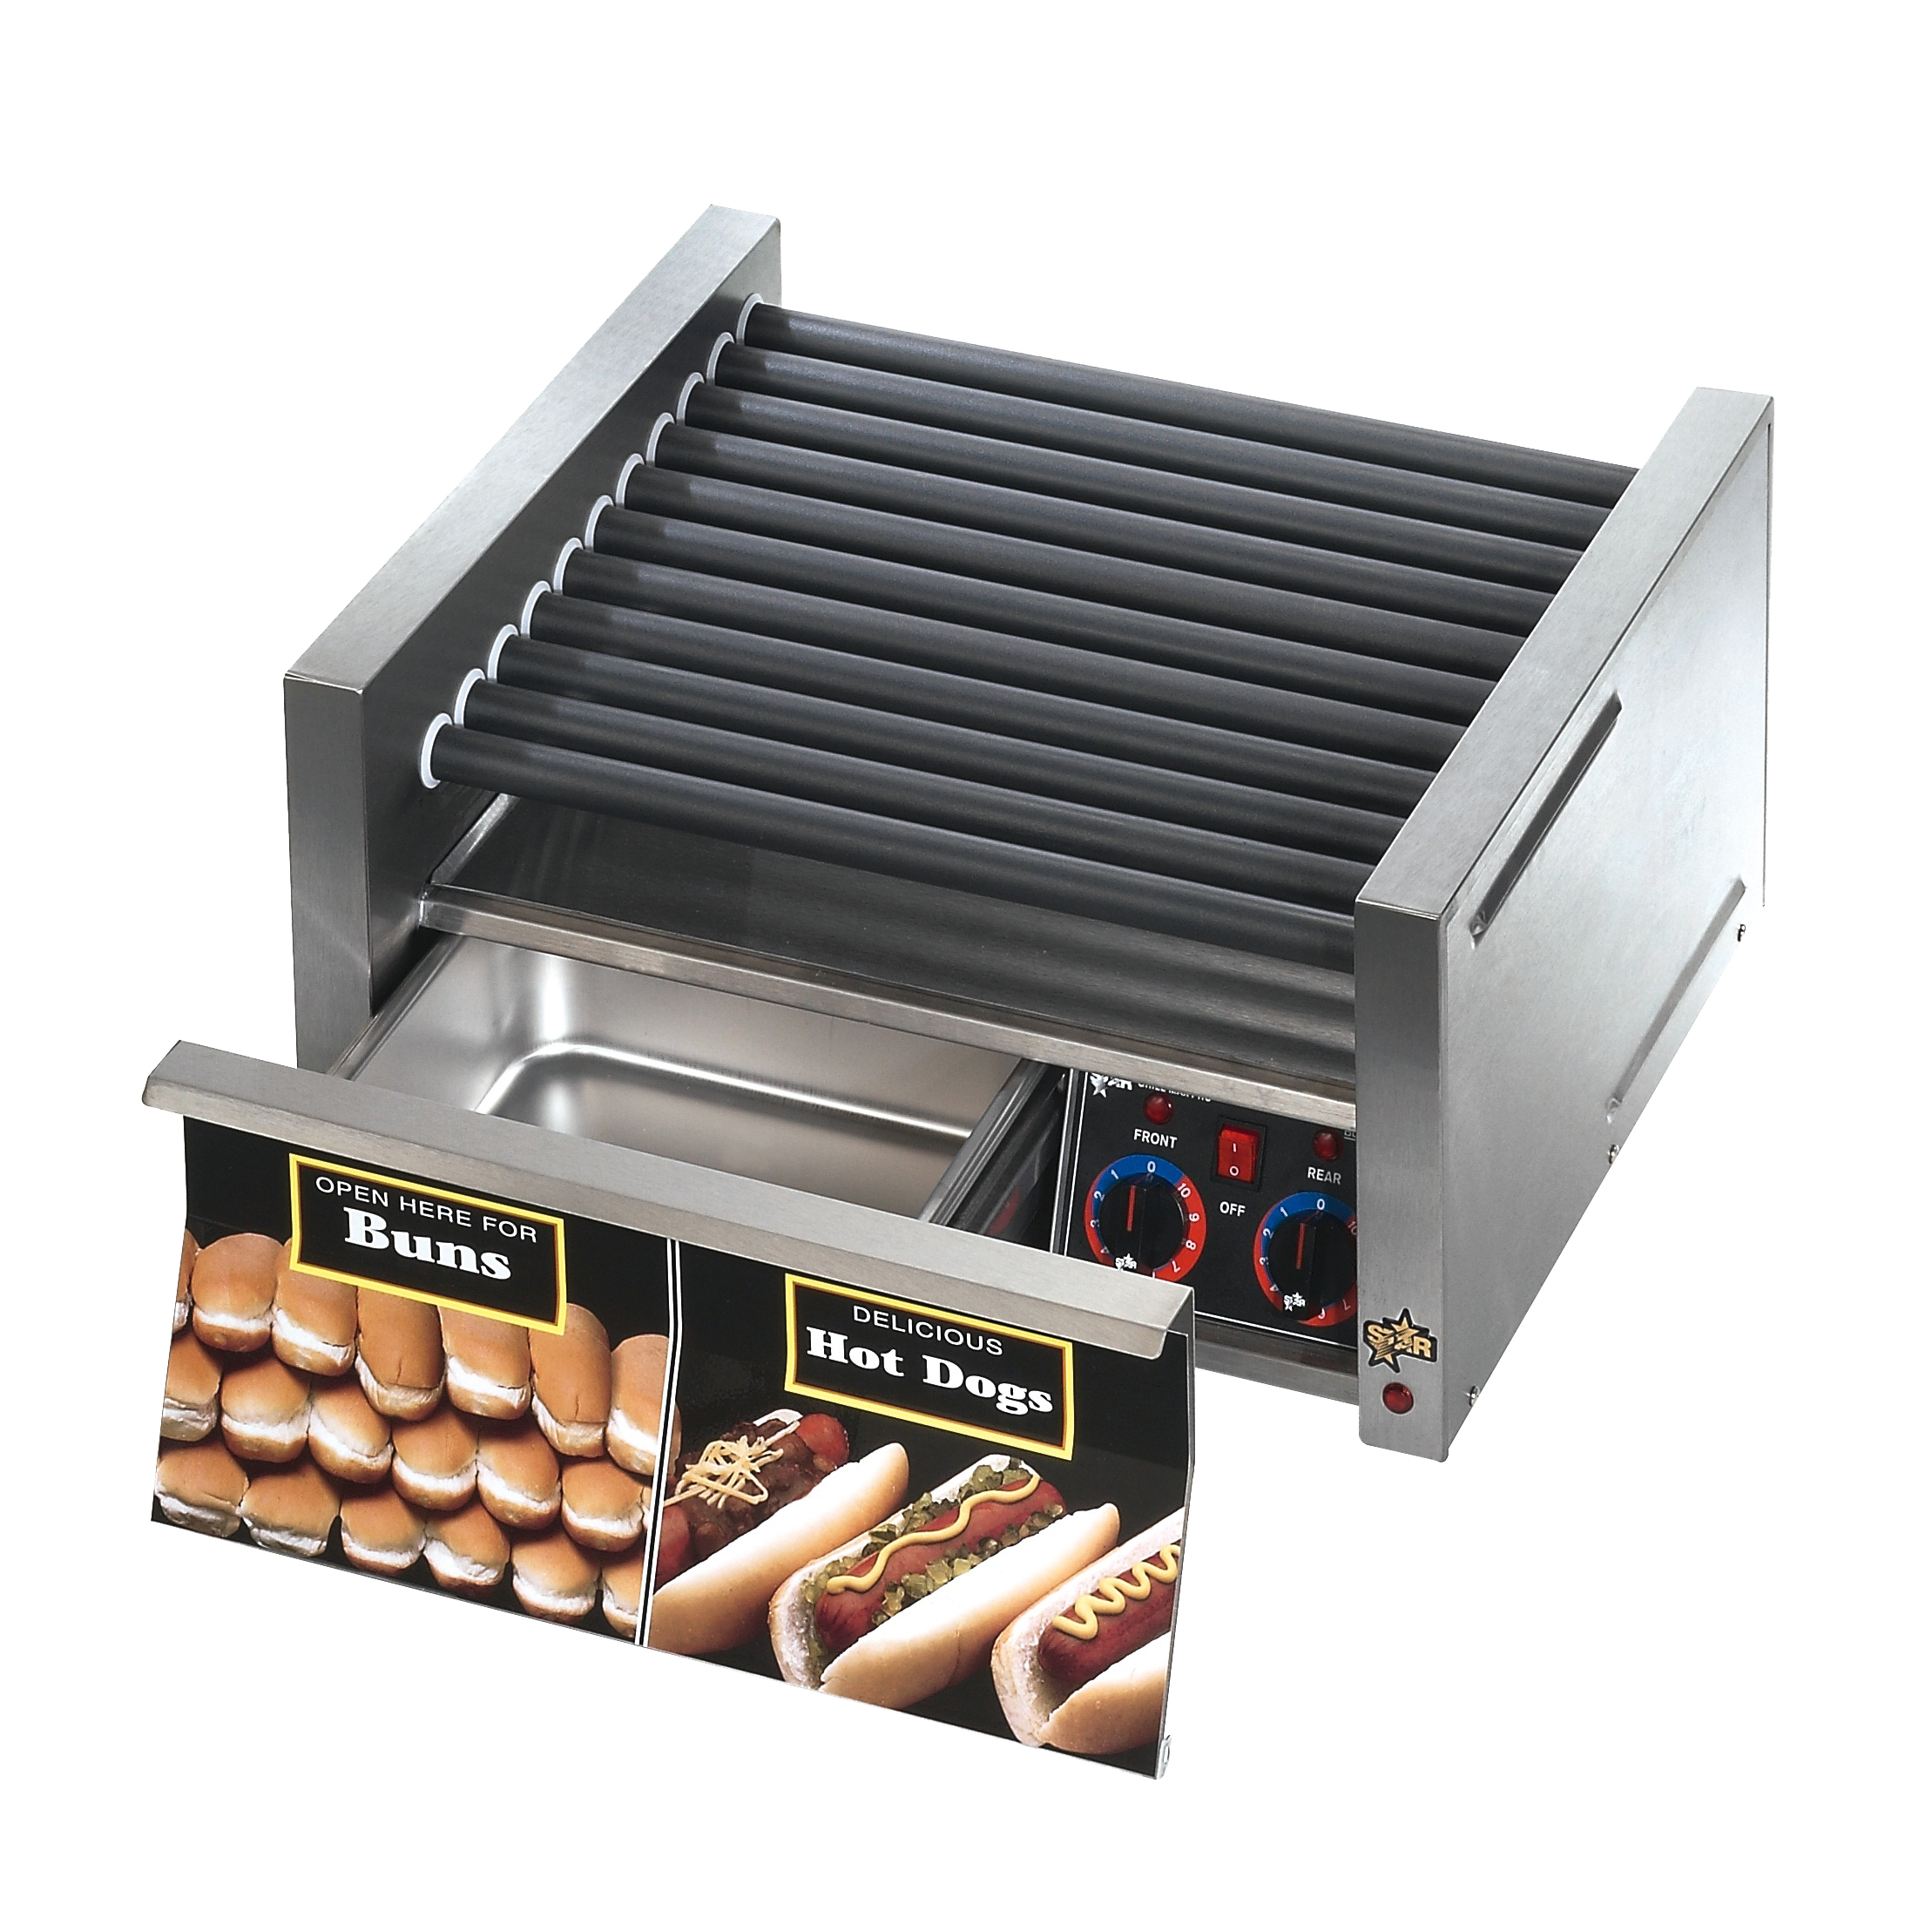 Star 45STBDE hot dog grill